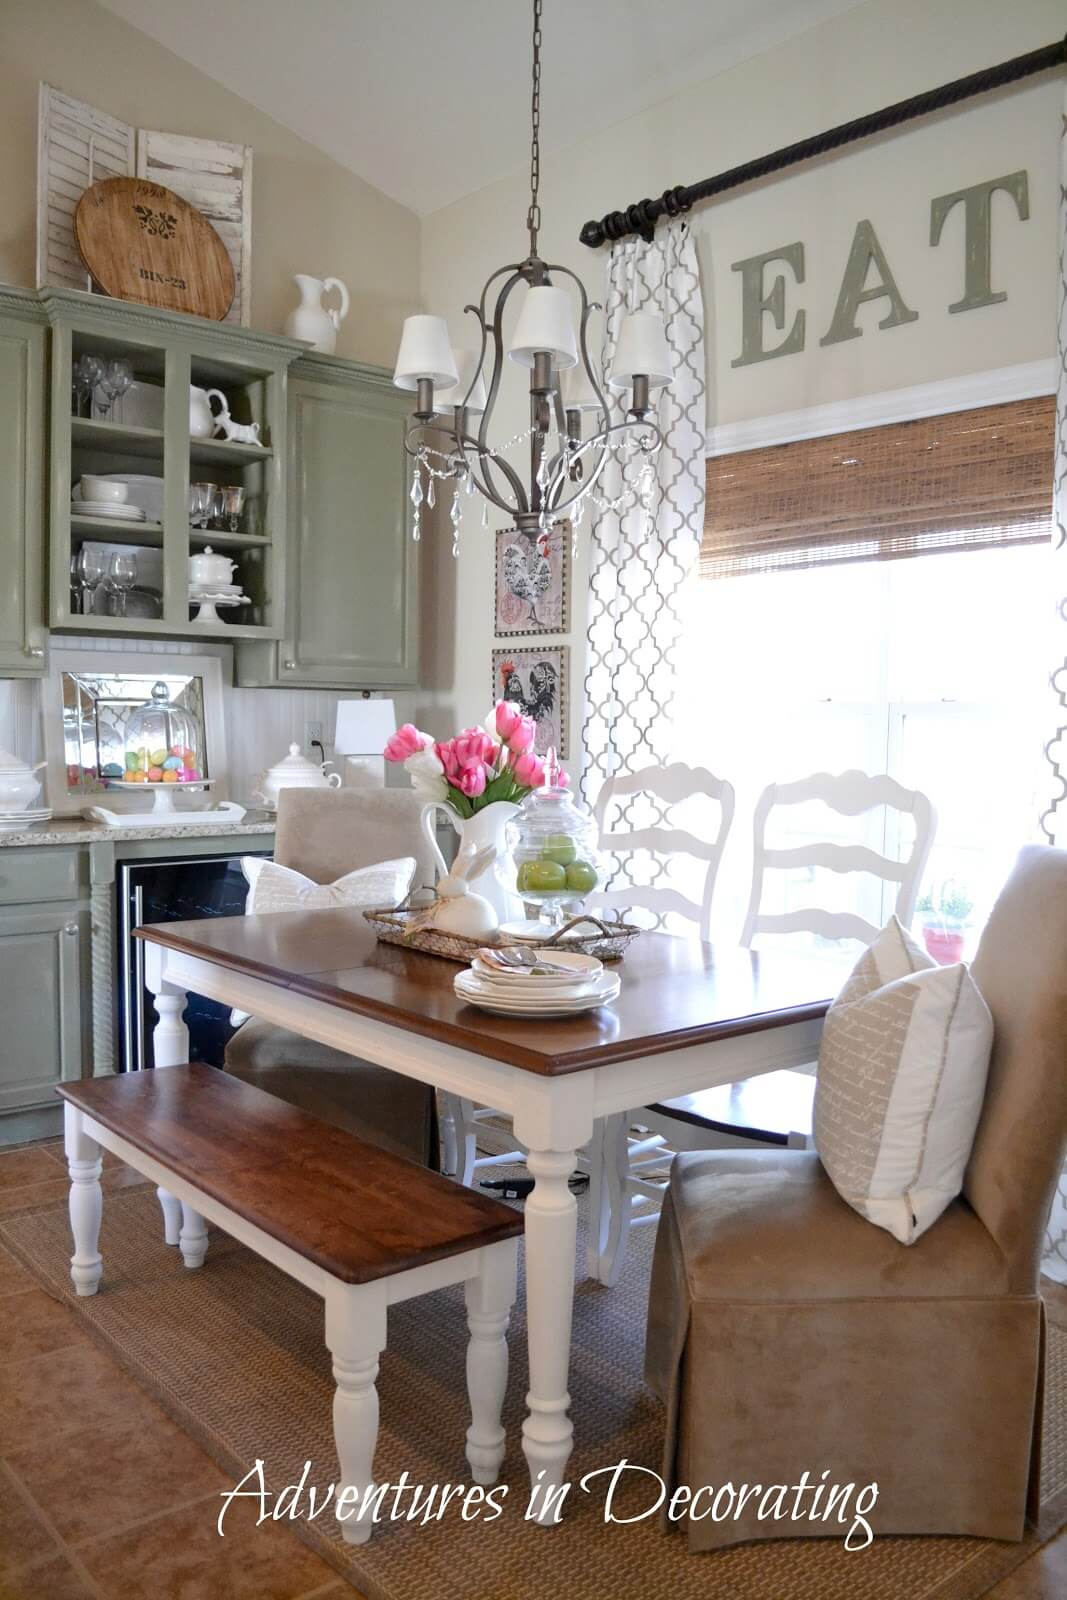 37 Best Farmhouse Dining Room Design and Decor Ideas for 2017 : 01 farmhouse dining room design decor ideas homebnc from homebnc.com size 1067 x 1600 jpeg 157kB